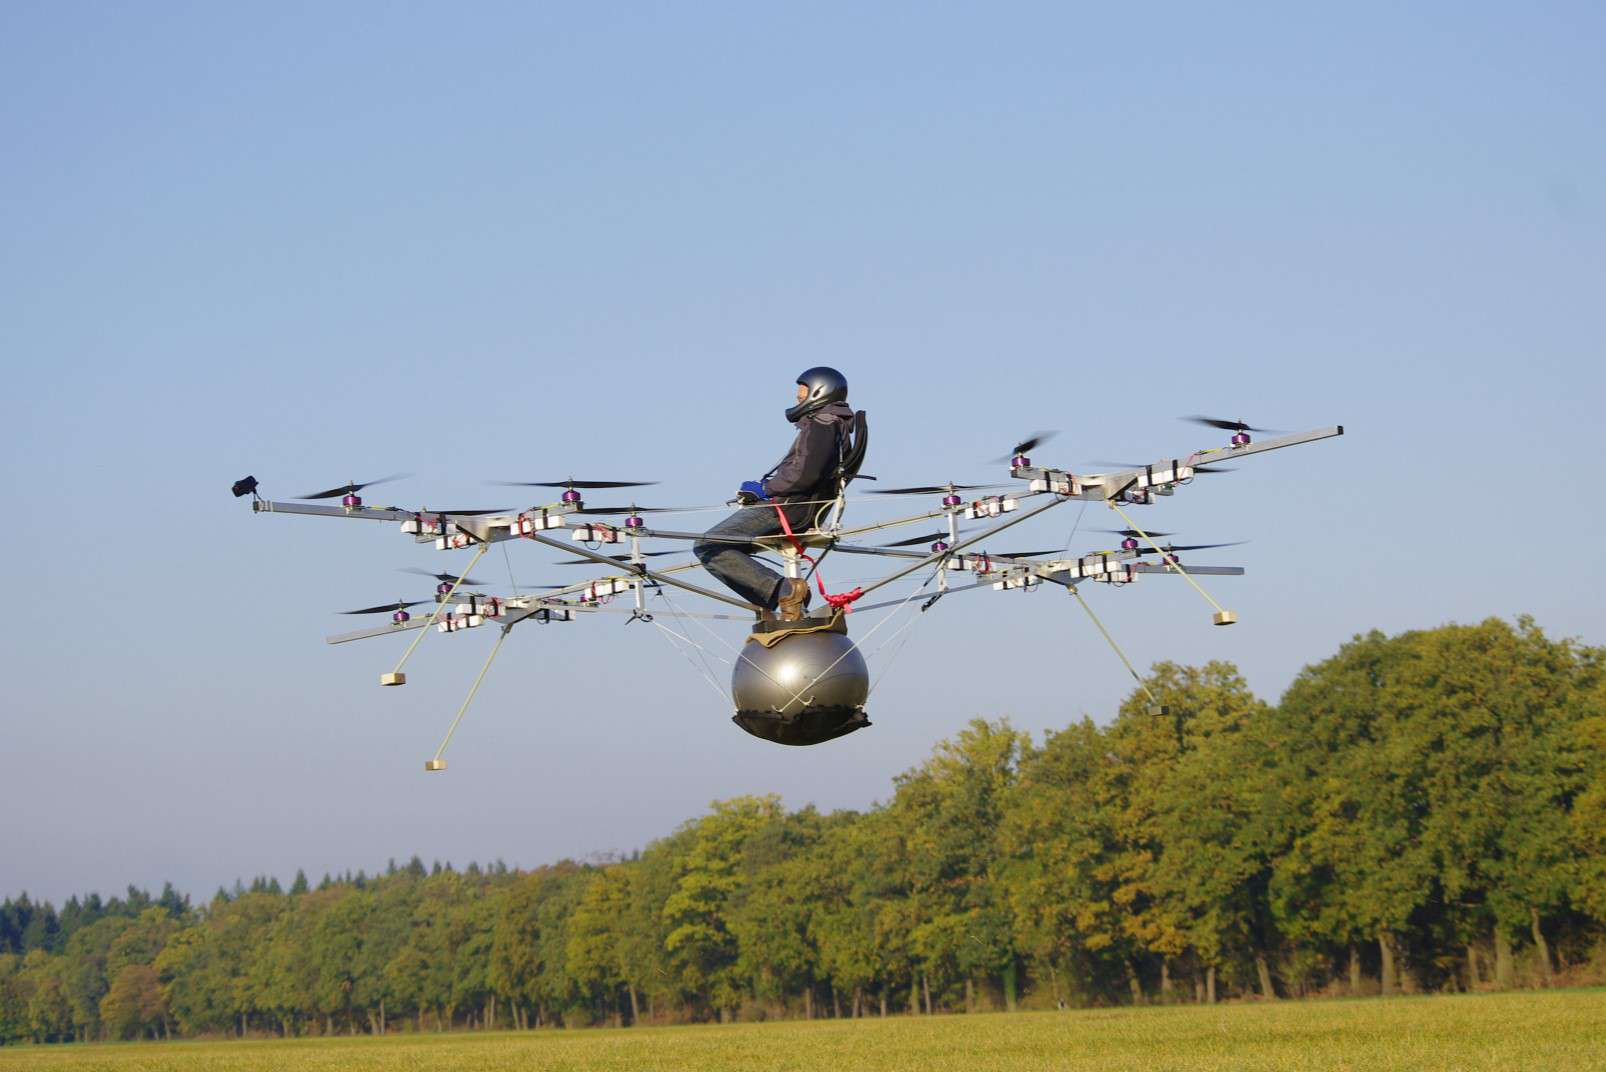 First flight of the first Volocopter prototype passenger-carrying drone